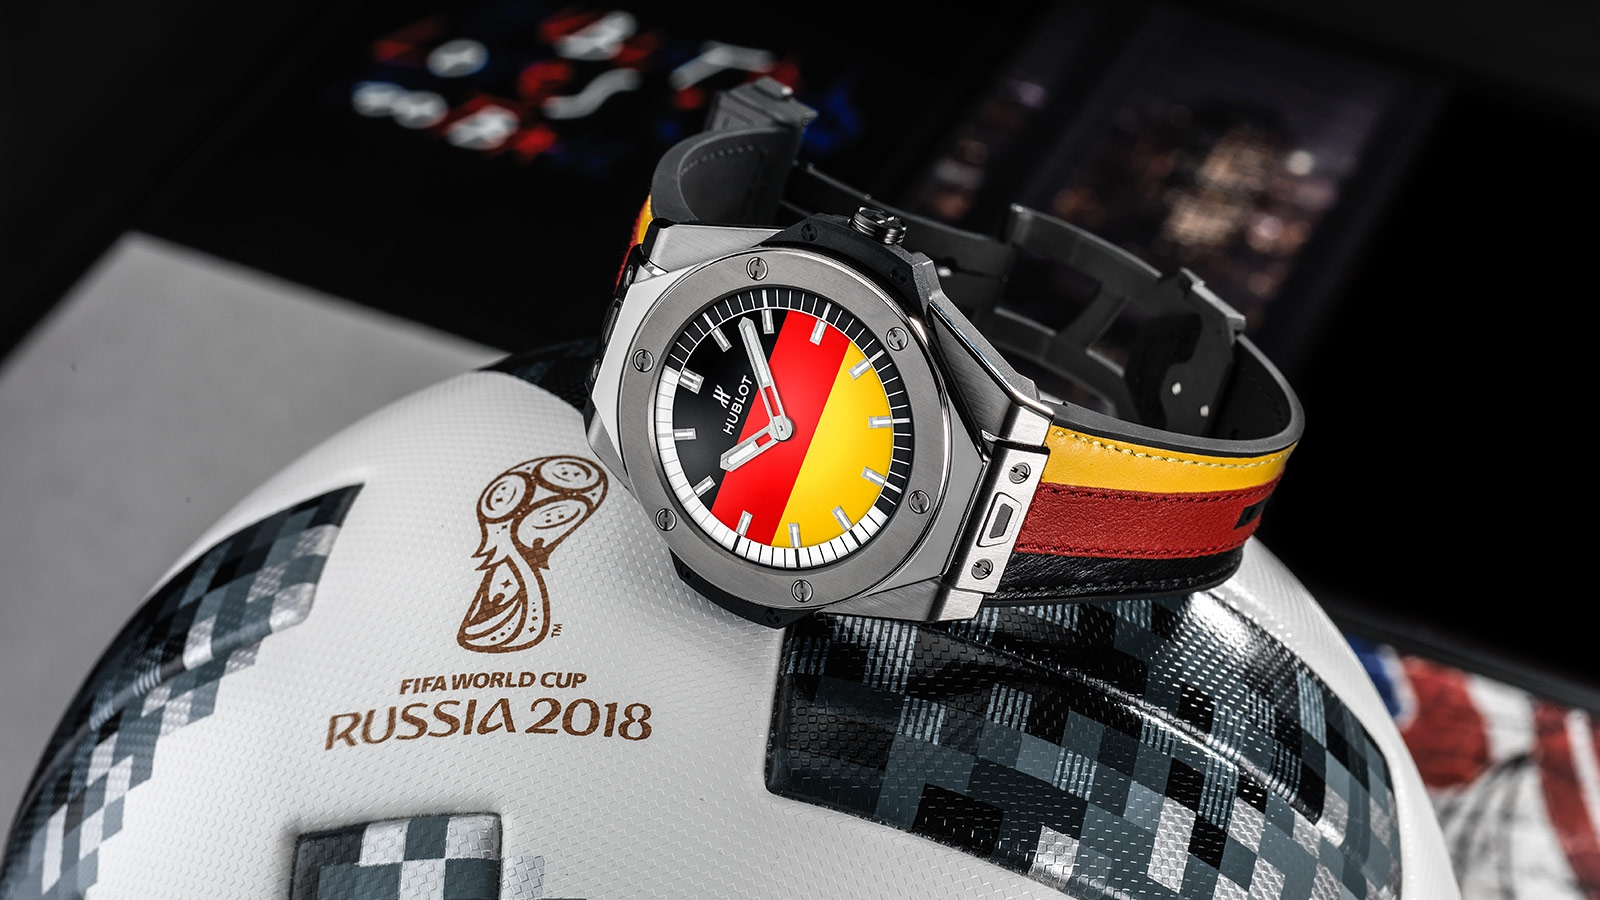 http://luxshopping.vn/Uploads/UserFiles/images/big-bang-referee-2018-fifa-world-cup-4.jpg